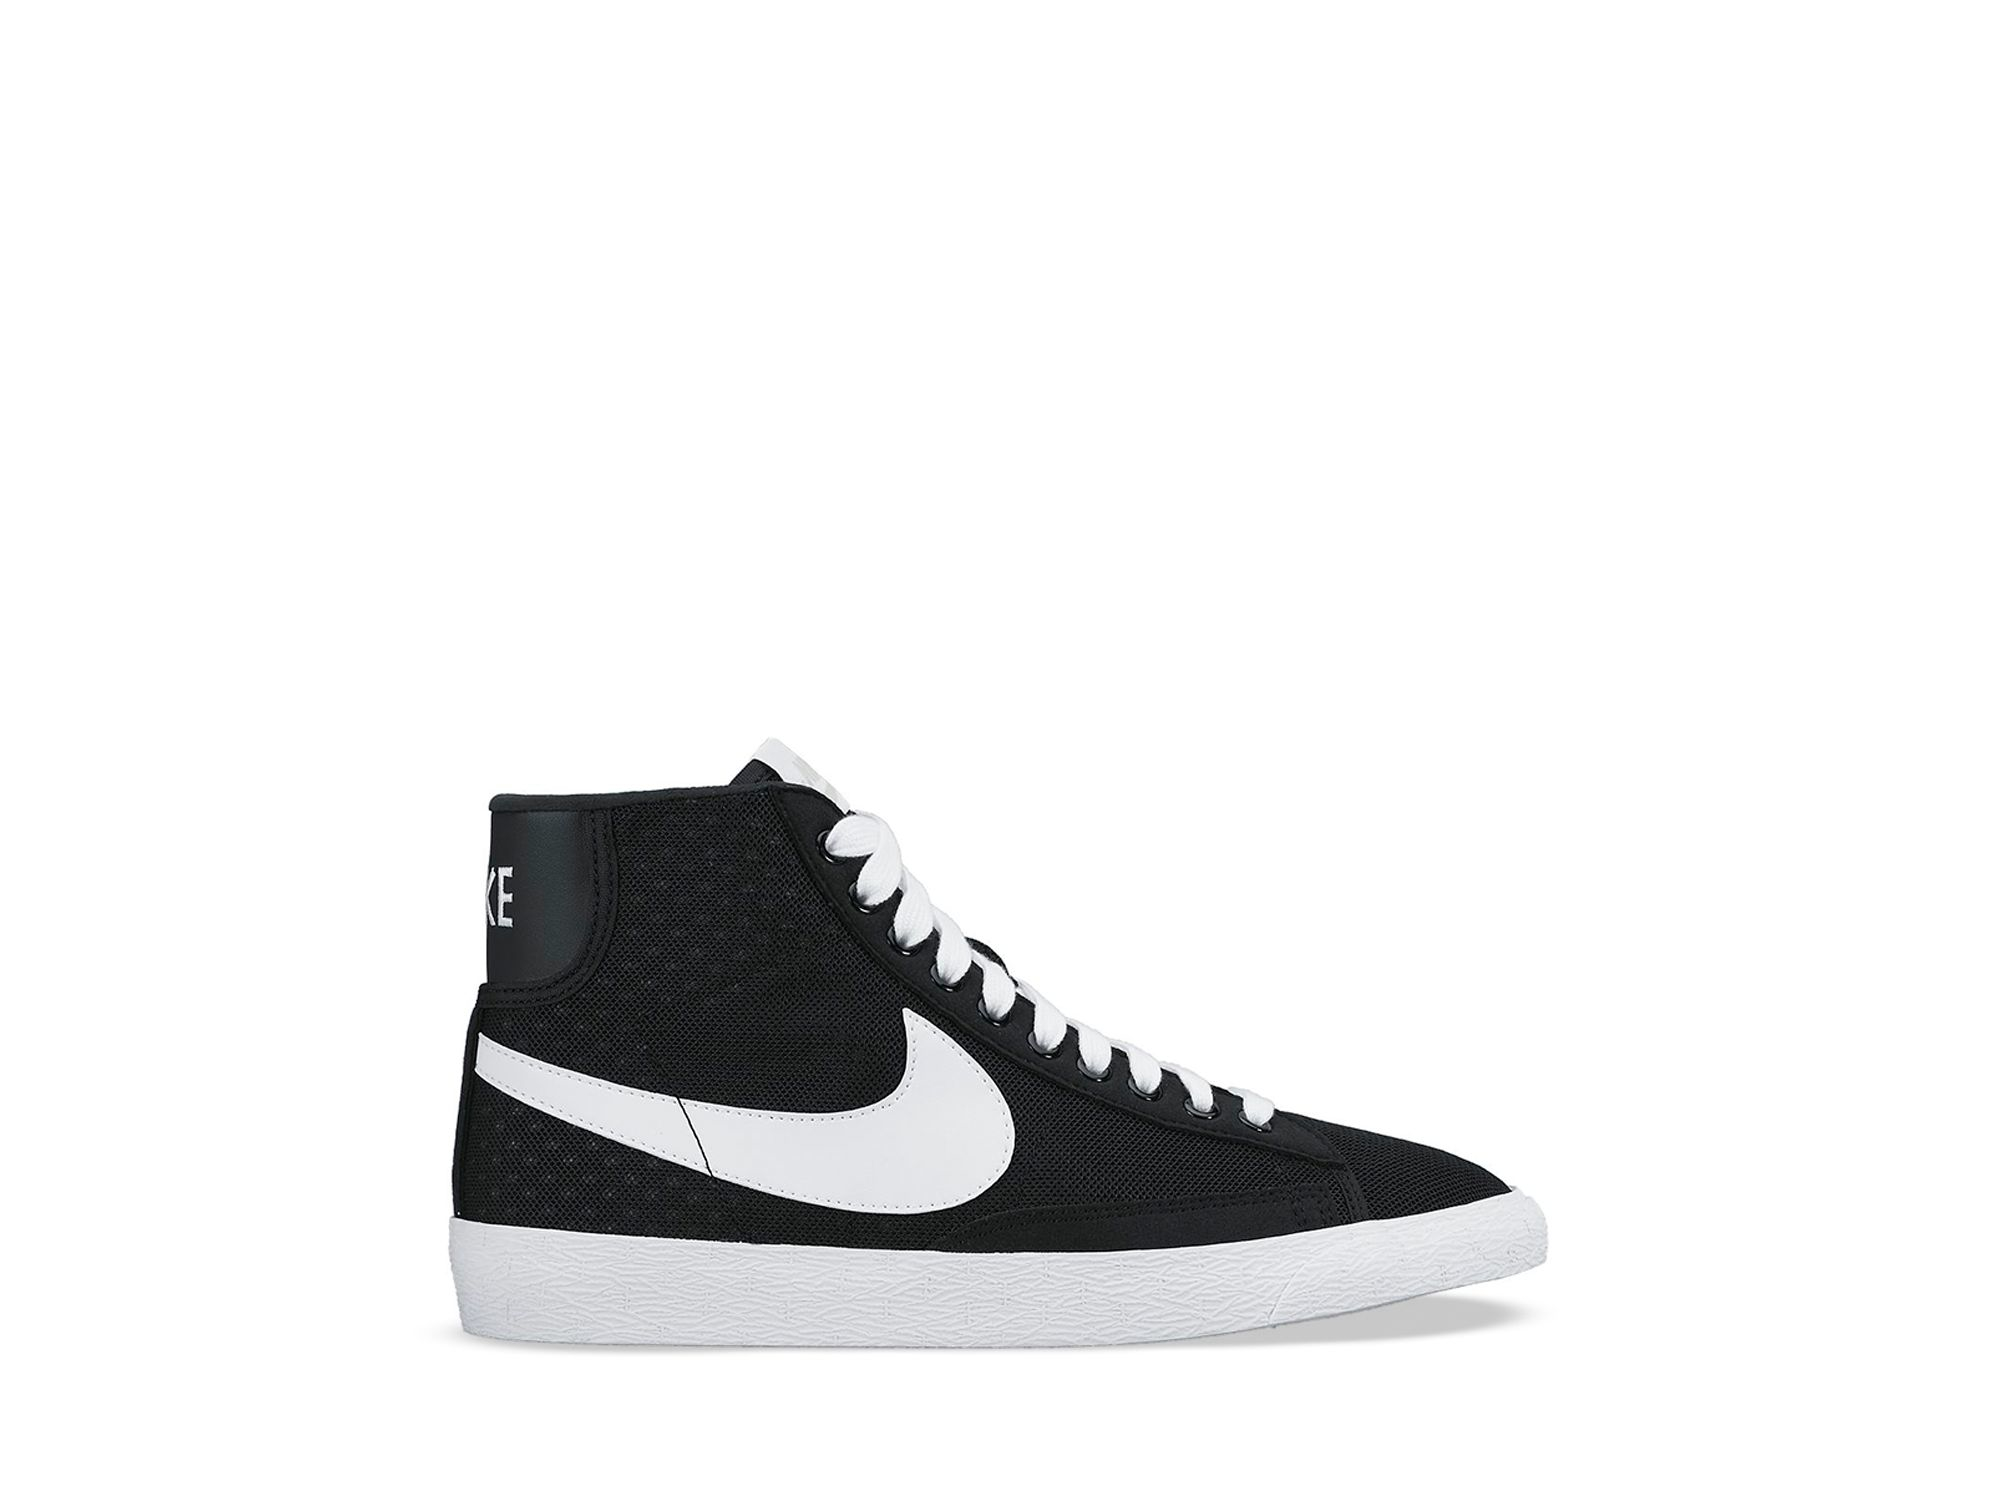 promo code 3f659 e99c7 ... Lyst - Nike Lace Up High Top Sneakers - WomenS Blazer Mid Me ...